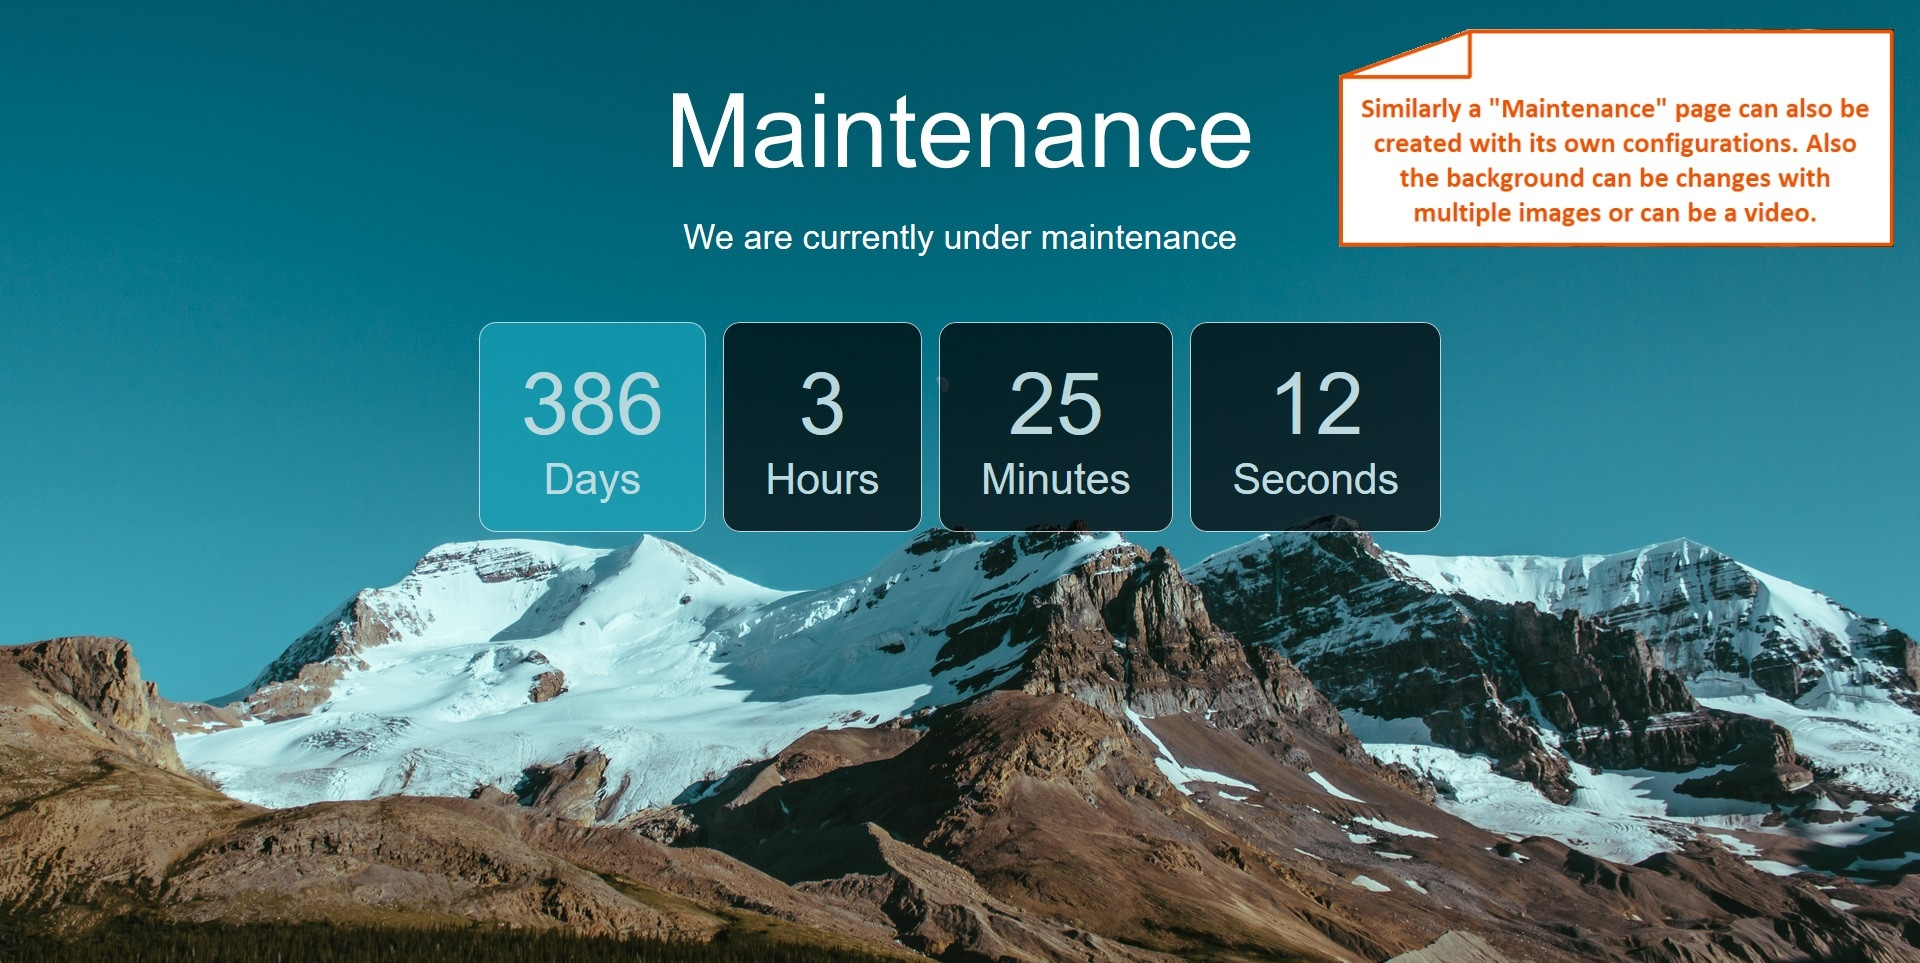 Henry Roger Magento News: COMING SOON / MAINTENANCE MODE for Magento 2